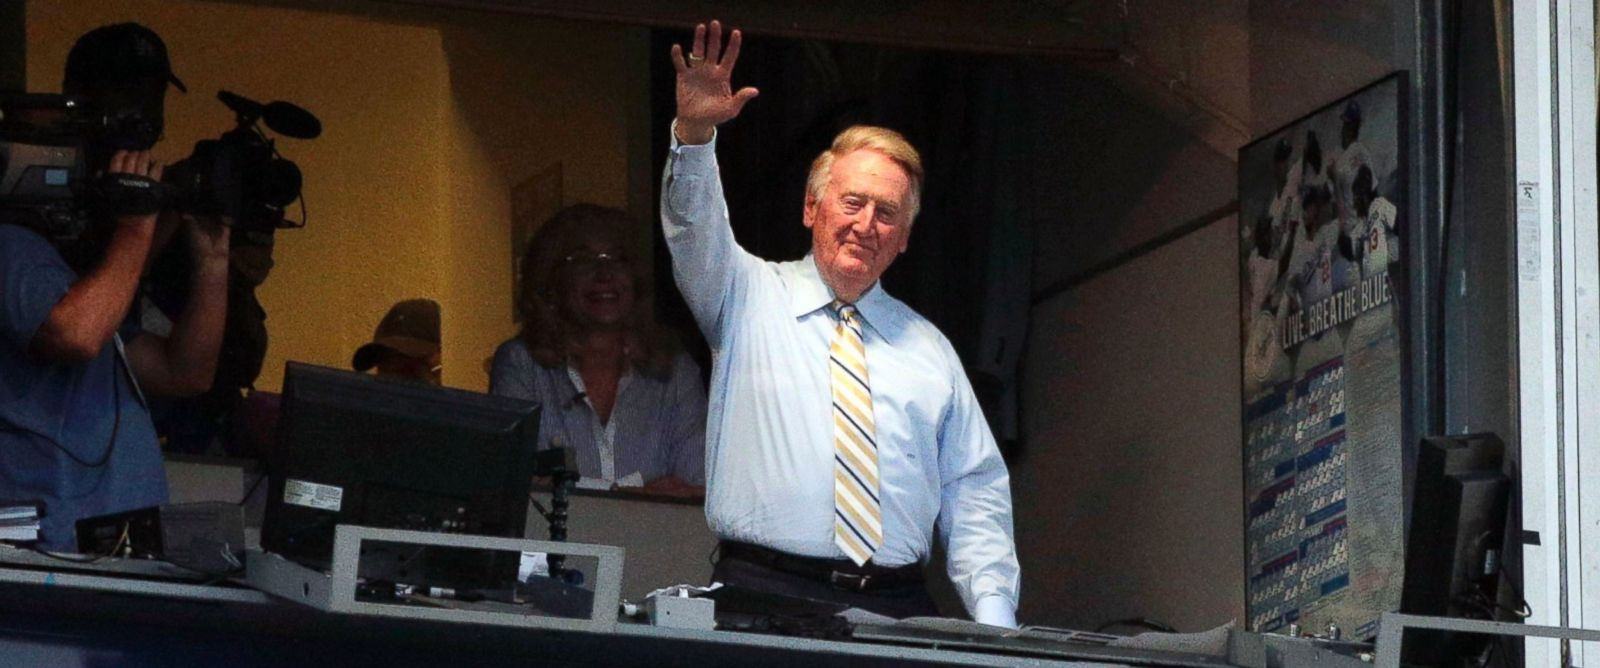 PHOTO: Broadcaster Vin Scully acknowledges the crowd at Dodger Stadium during a baseball game between the Los Angeles Dodgers and the Atlanta Braves, July 29, 2014, in Los Angeles.